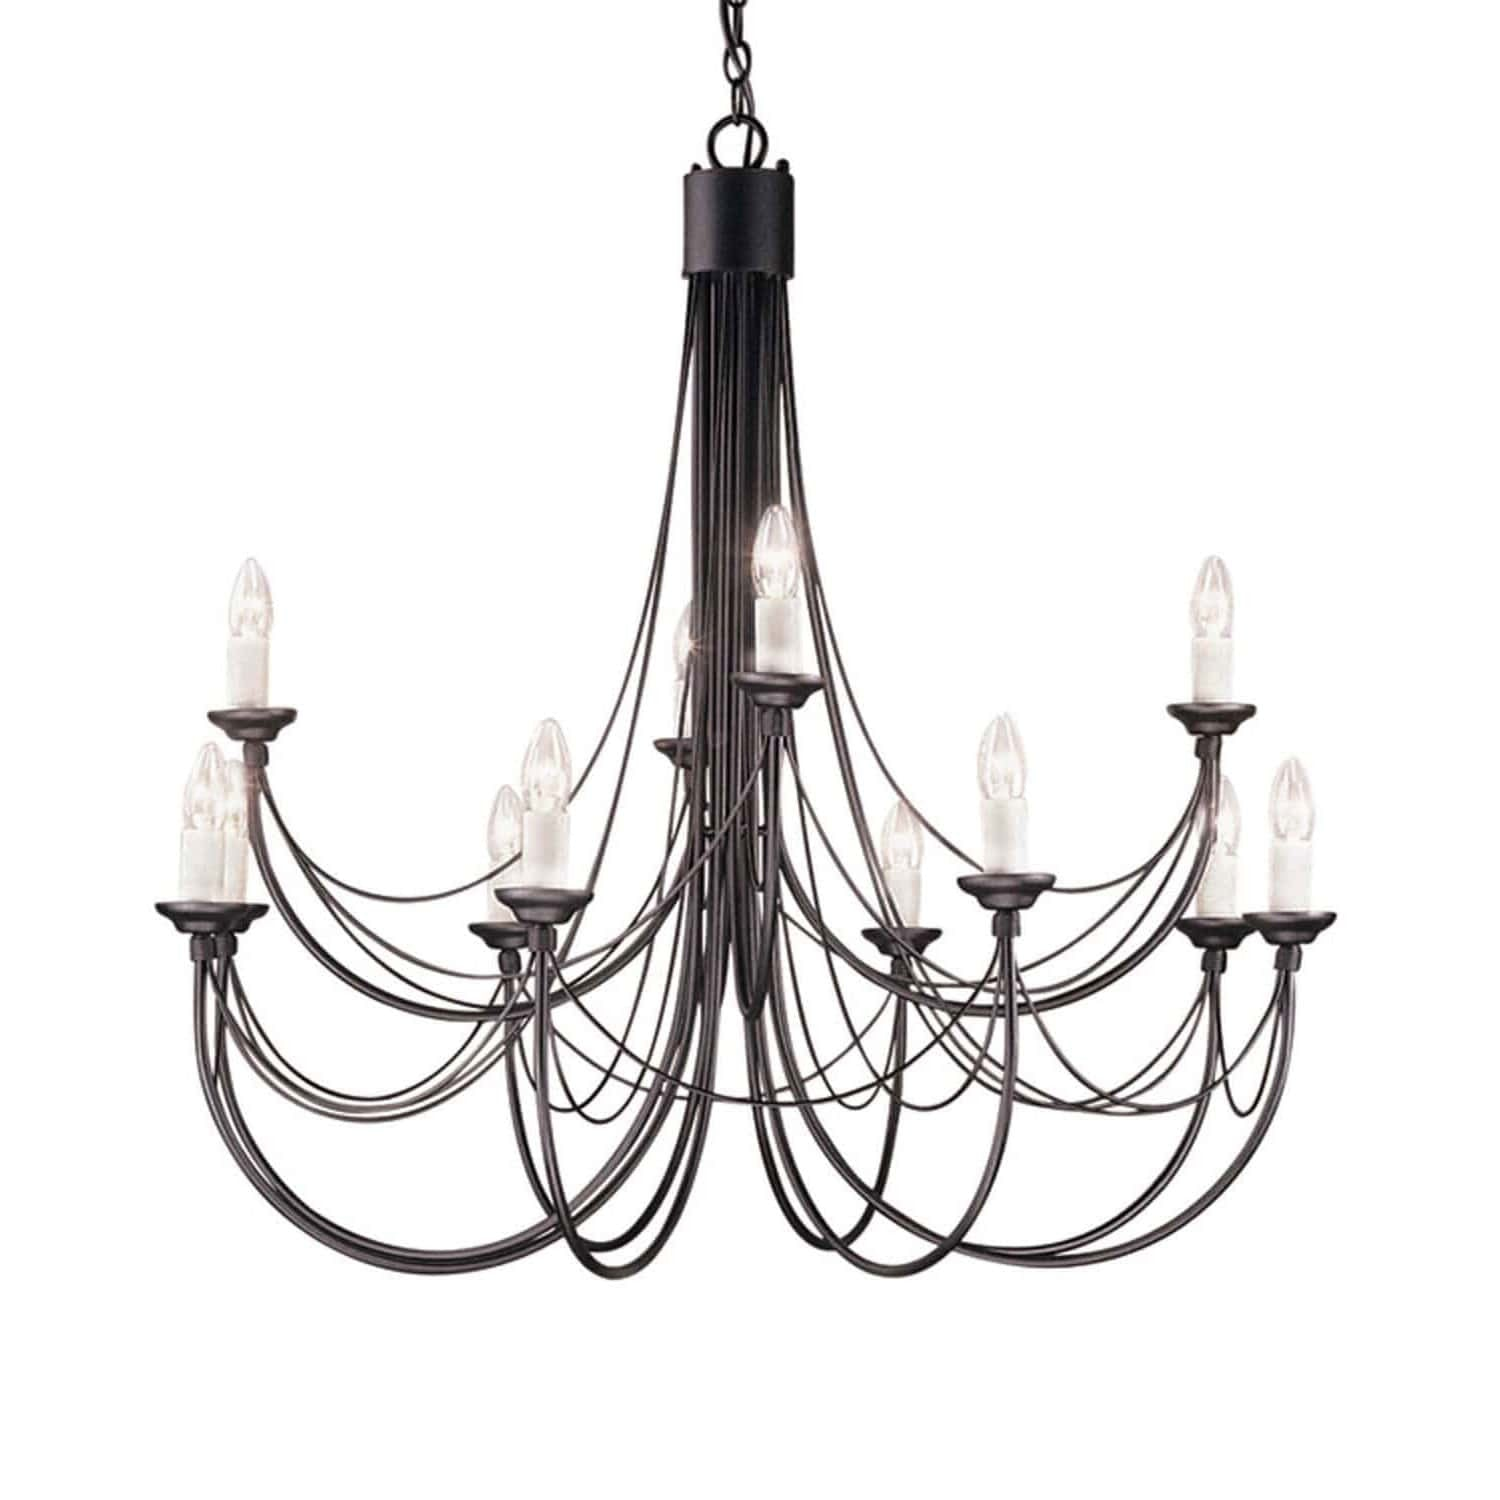 Elstead Carisbrooke 12 Light Black Candle Chandelier CB12 BLACK ...